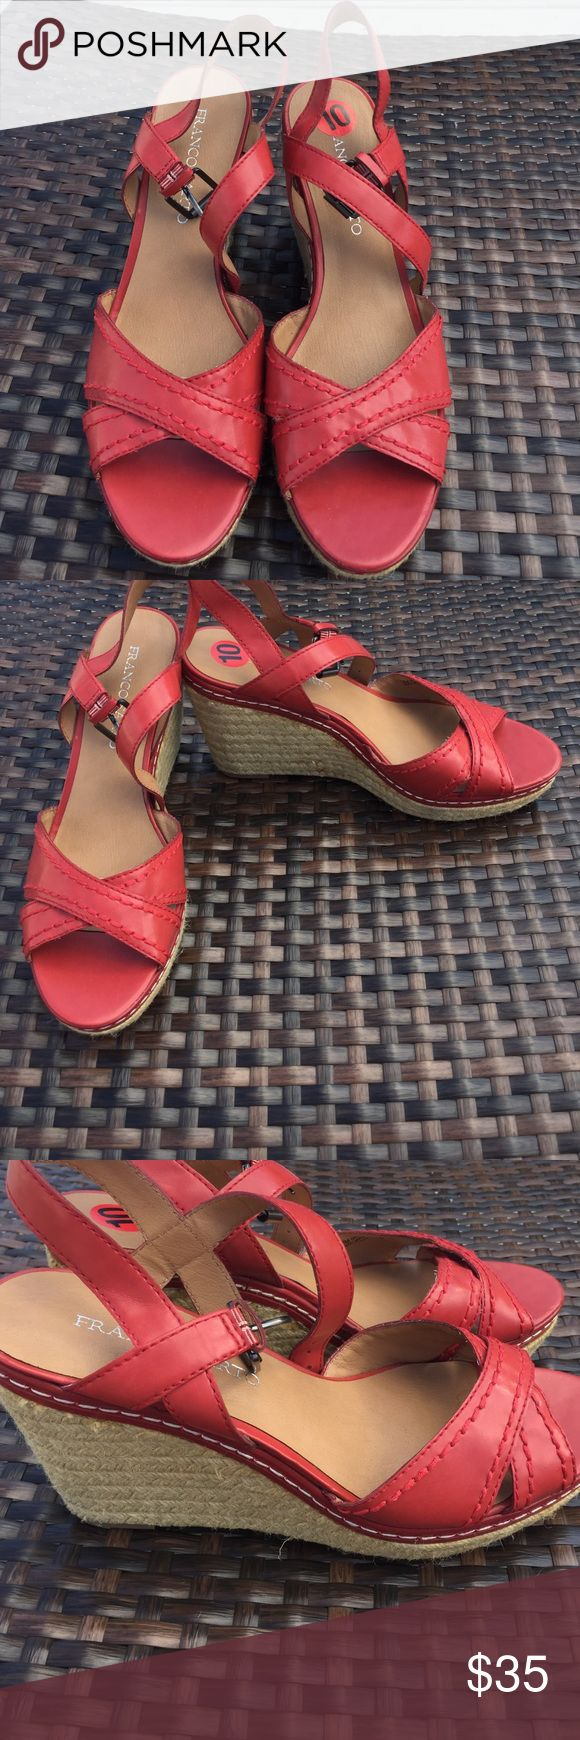 NWOT Franco Sarto Red Wedge 10 New without tags Franco Sarto, size 10, red wedge shoes, adjustable ankle straps, adorable with a pair of shorts and a little top. Franco Sarto Shoes Wedges